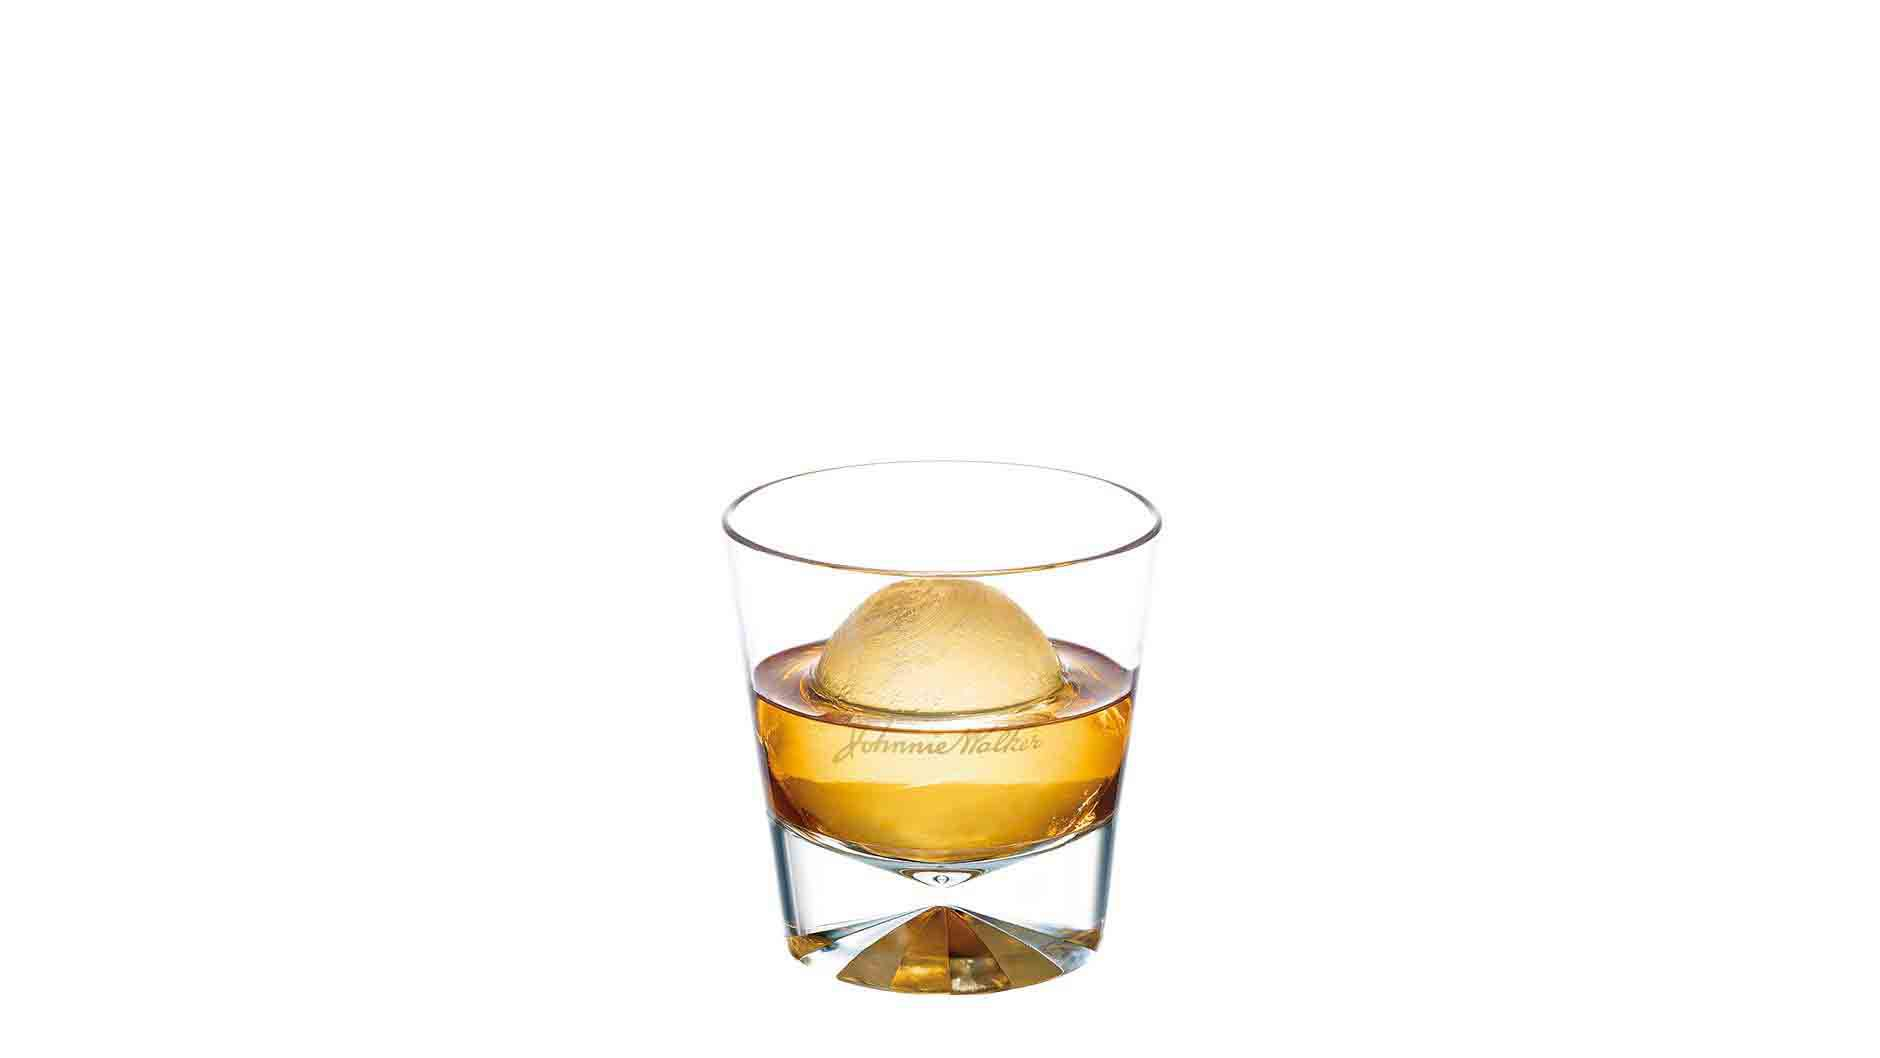 Johnnie Walker Double Black with an ice ball in a tumbler